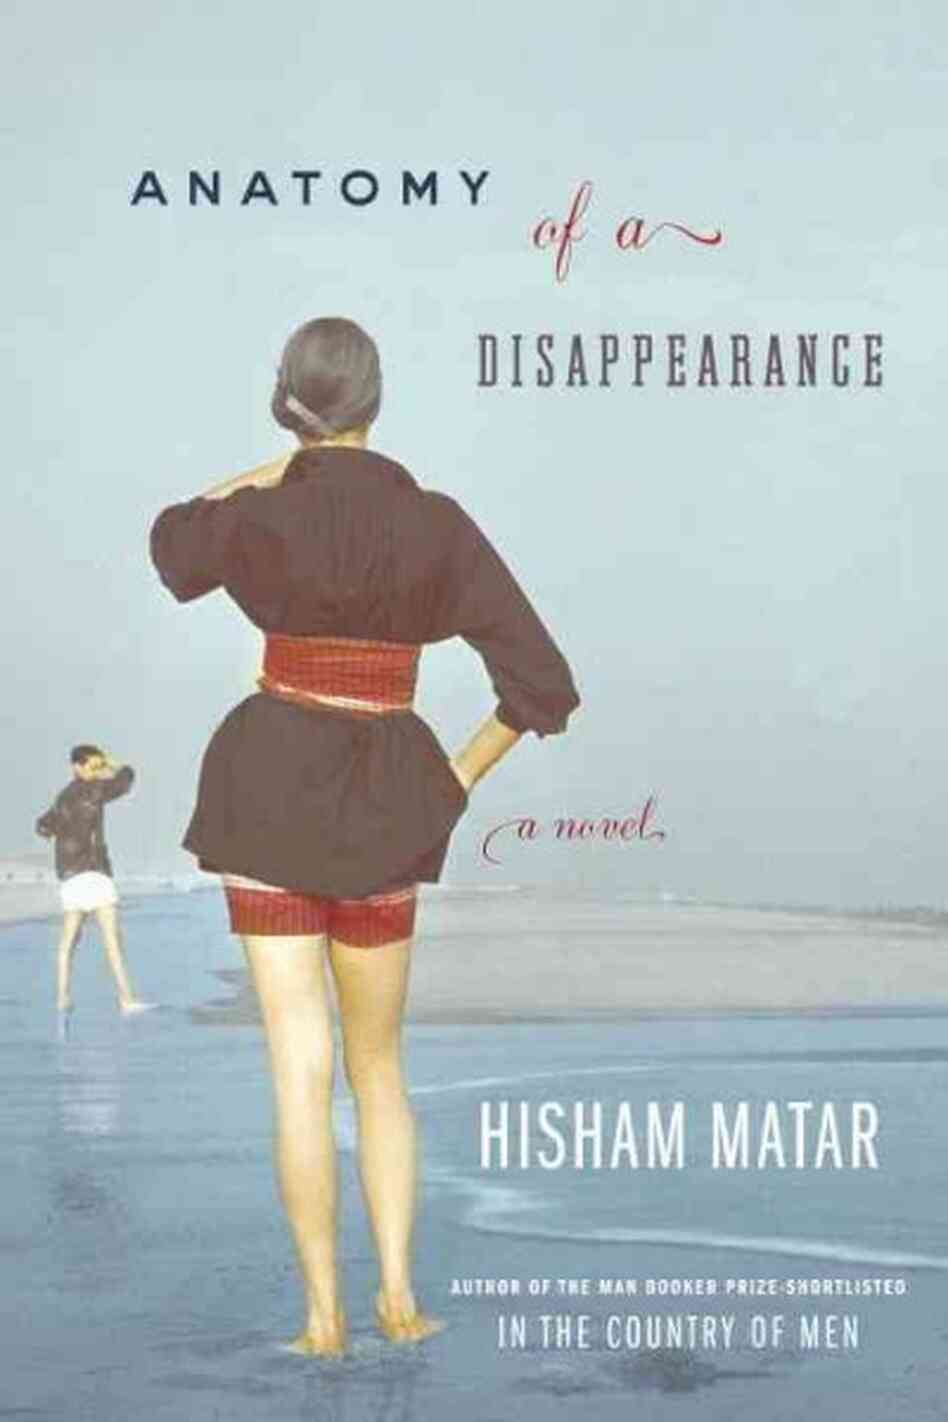 Anatomy of a Disappearance